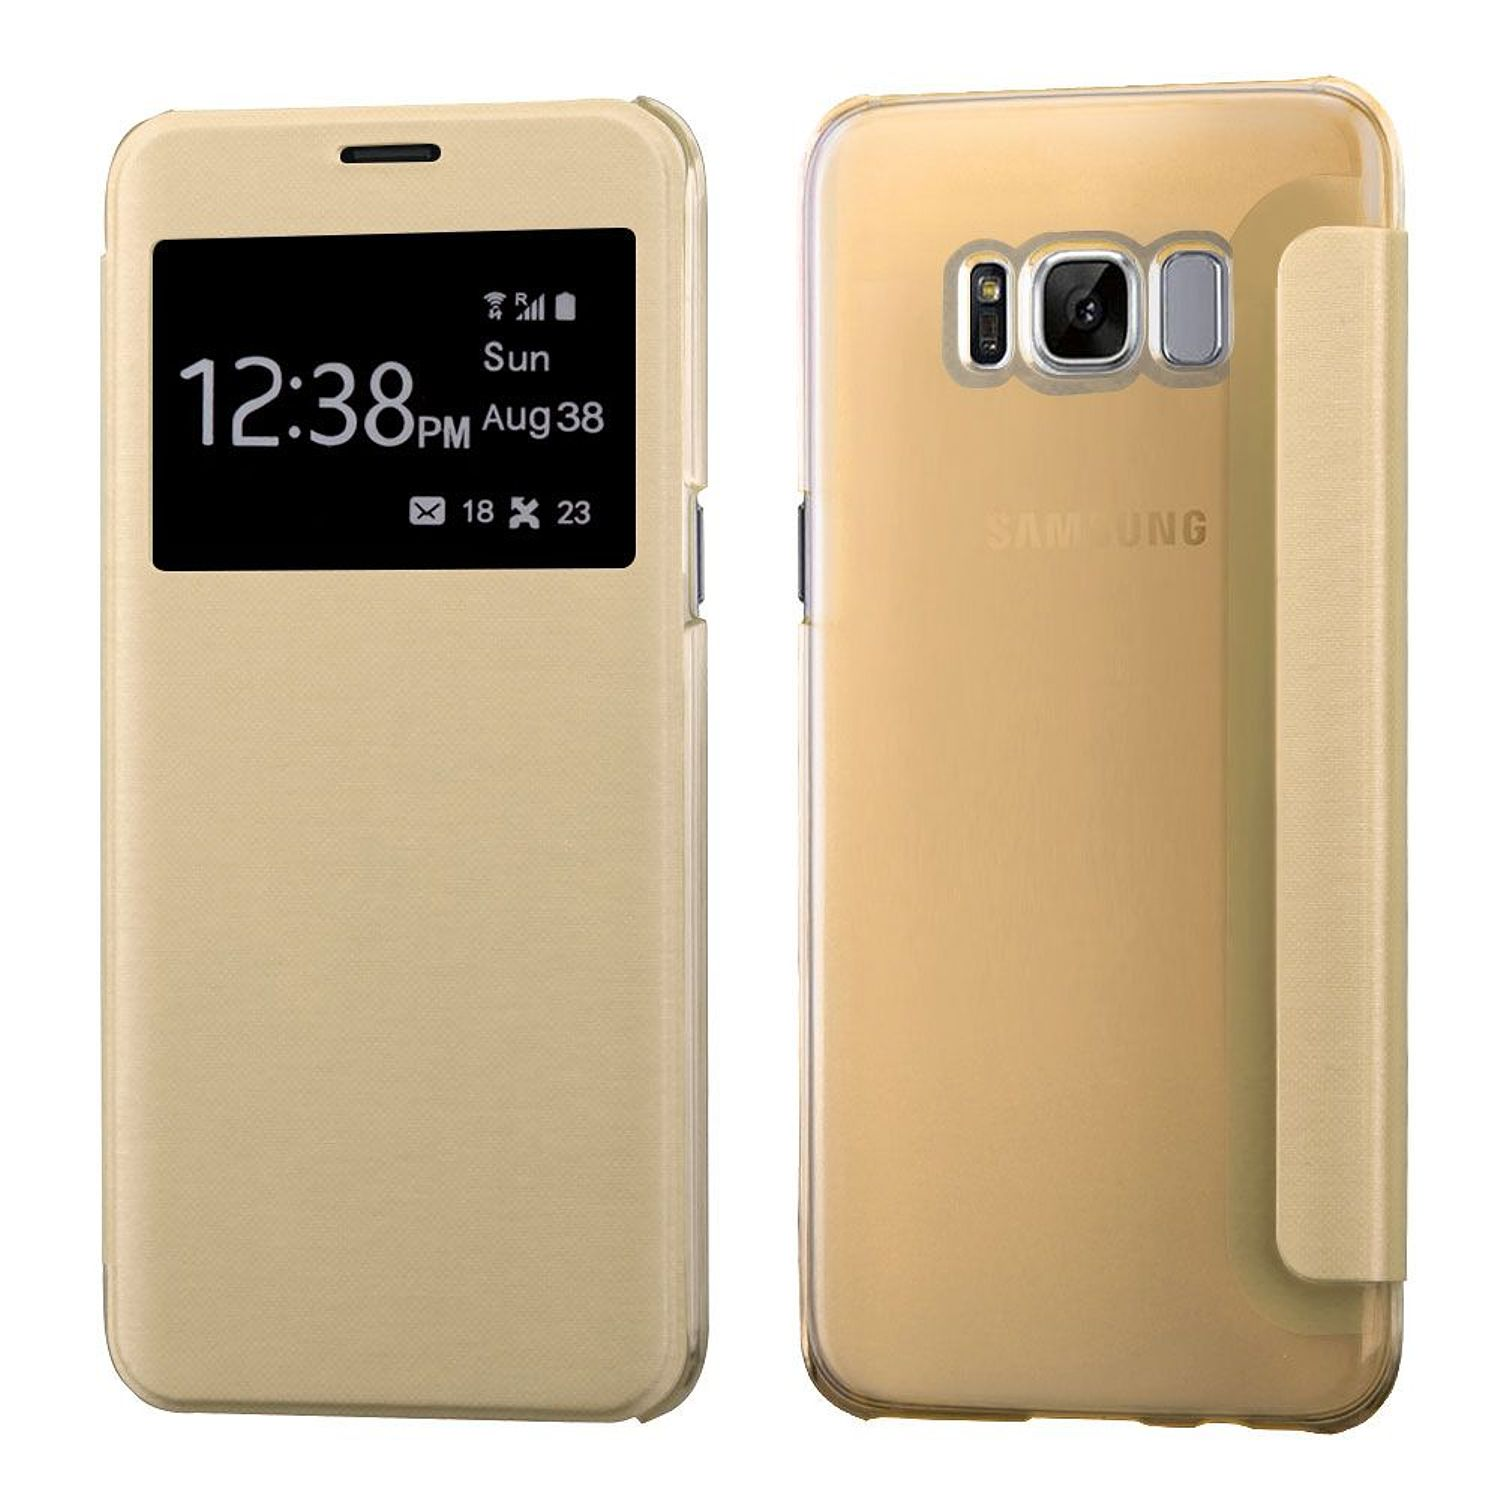 Samsung Galaxy S8+ Case, Samsung Galaxy S8 Plus Case, by Insten Folio Flip Leather Case Phone Cover For Samsung Galaxy S8 Plus S8+, Gold